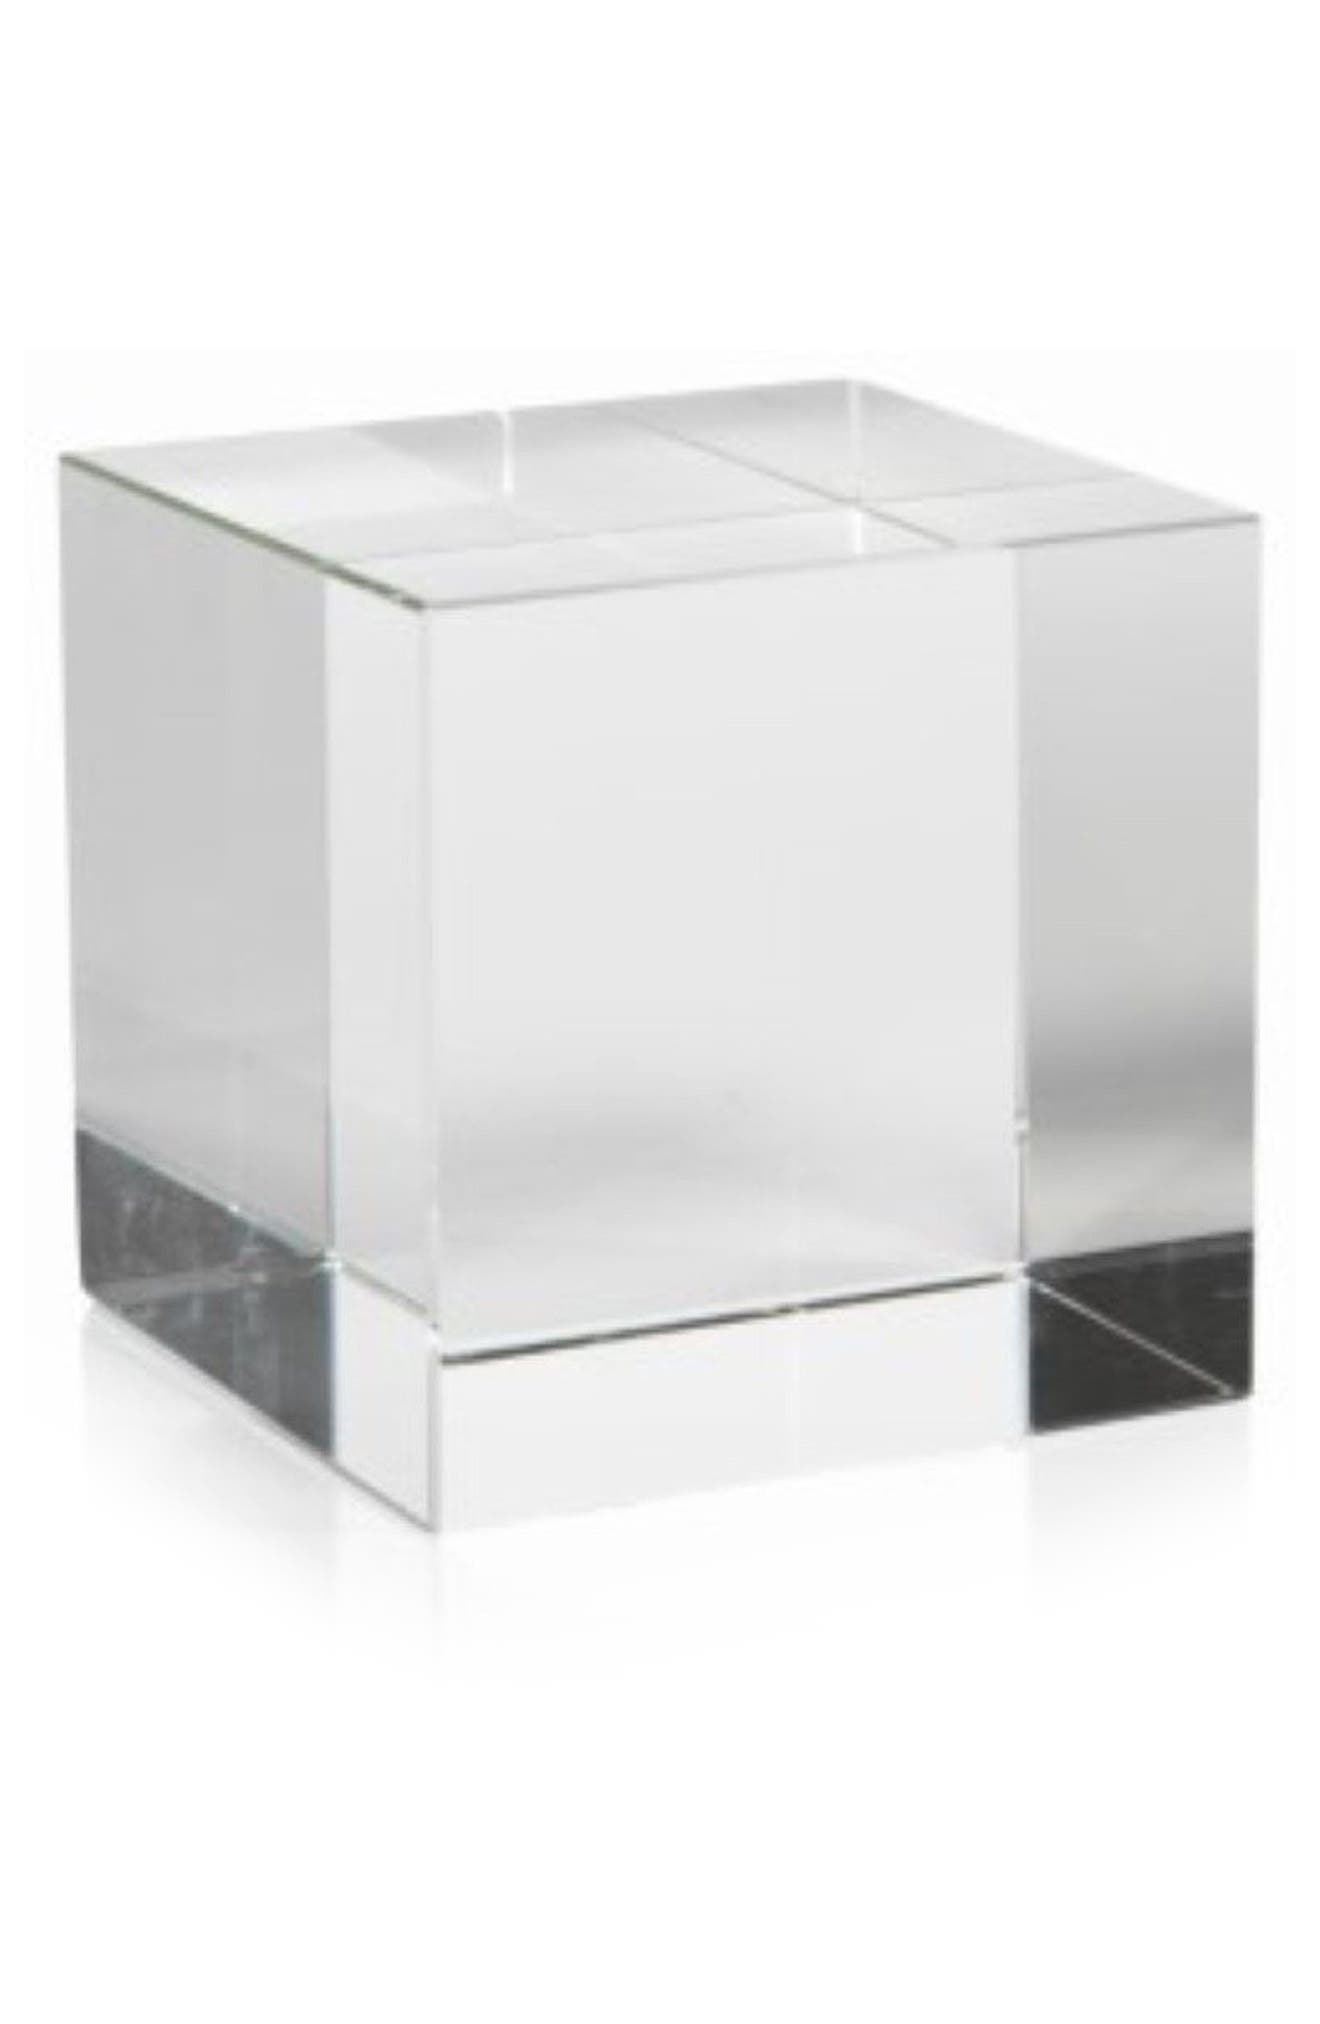 Jacy Glass Cube Decoration,                             Main thumbnail 1, color,                             Clear